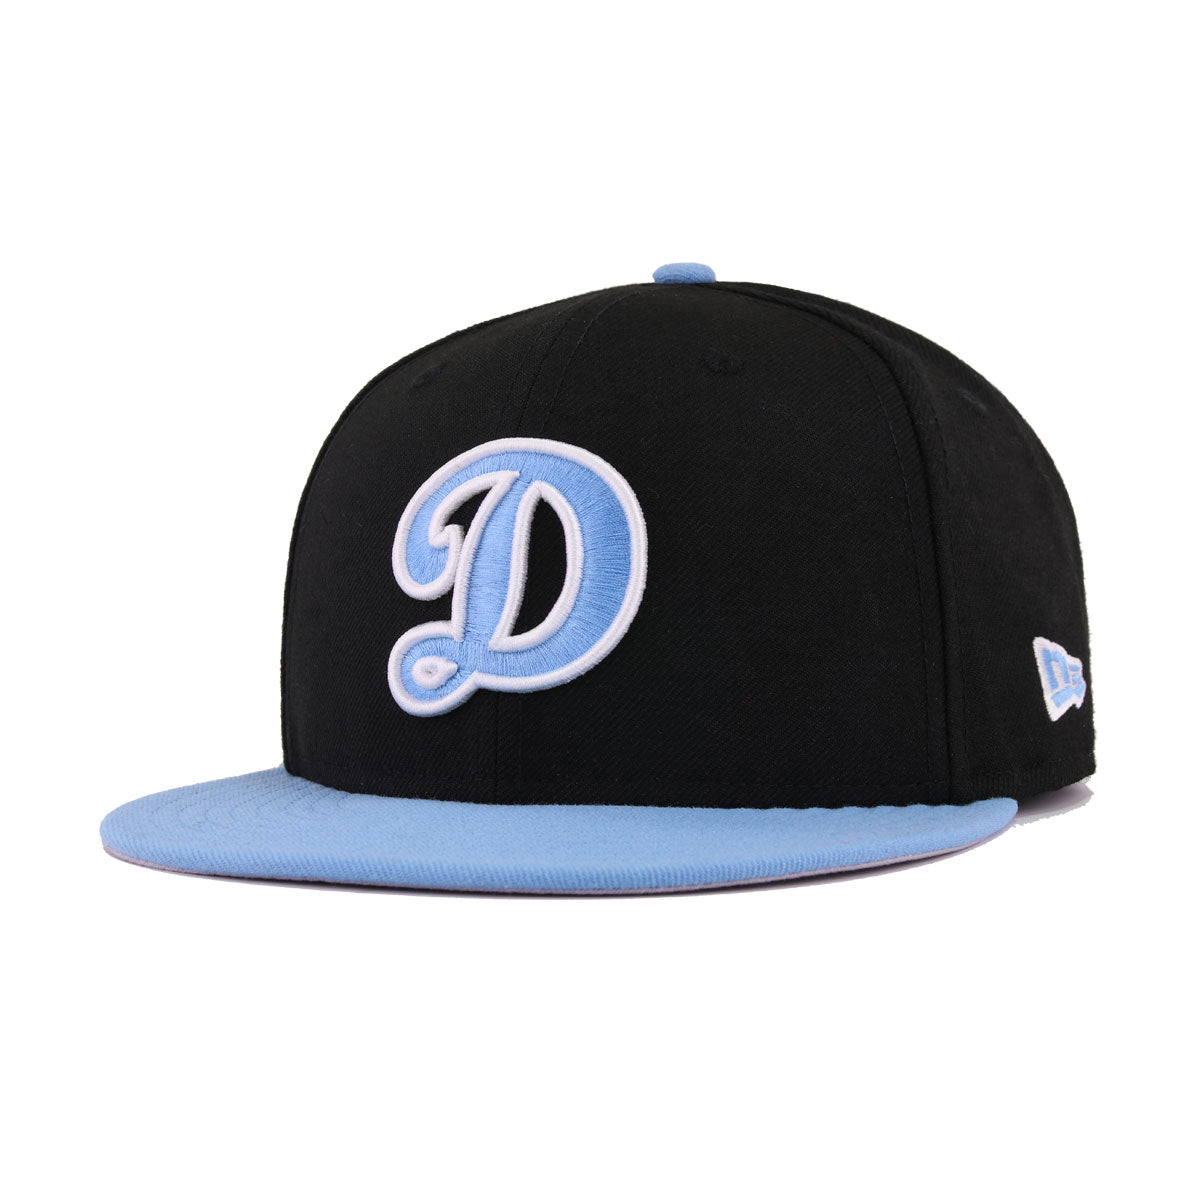 Los Angeles Dodgers Black Sky Blue New Era 9Fifty Snapback